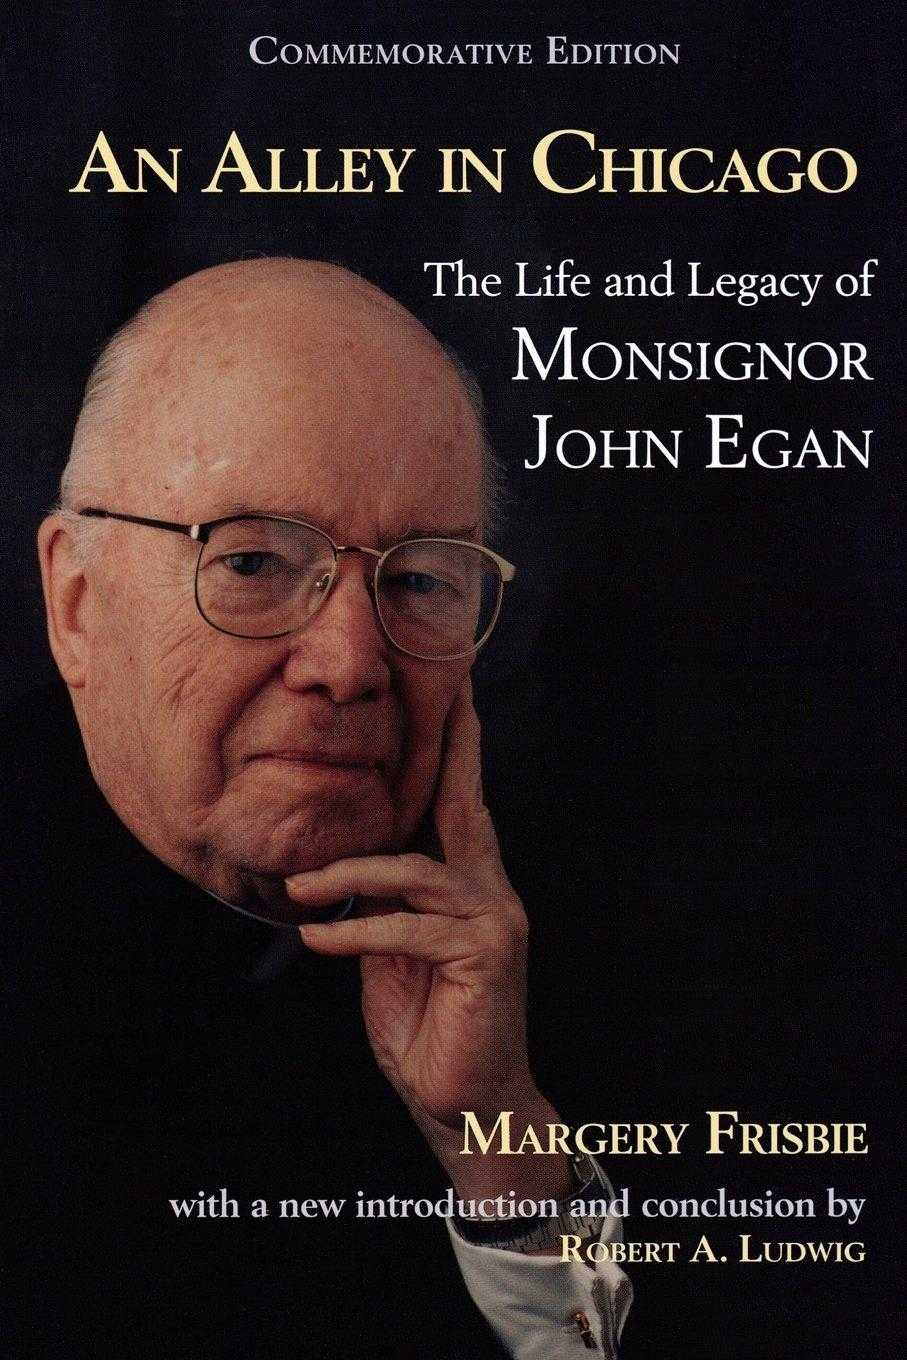 An Alley in Chicago: The Life and Legacy of Monsignor John Egan b., Frisbie, Margery